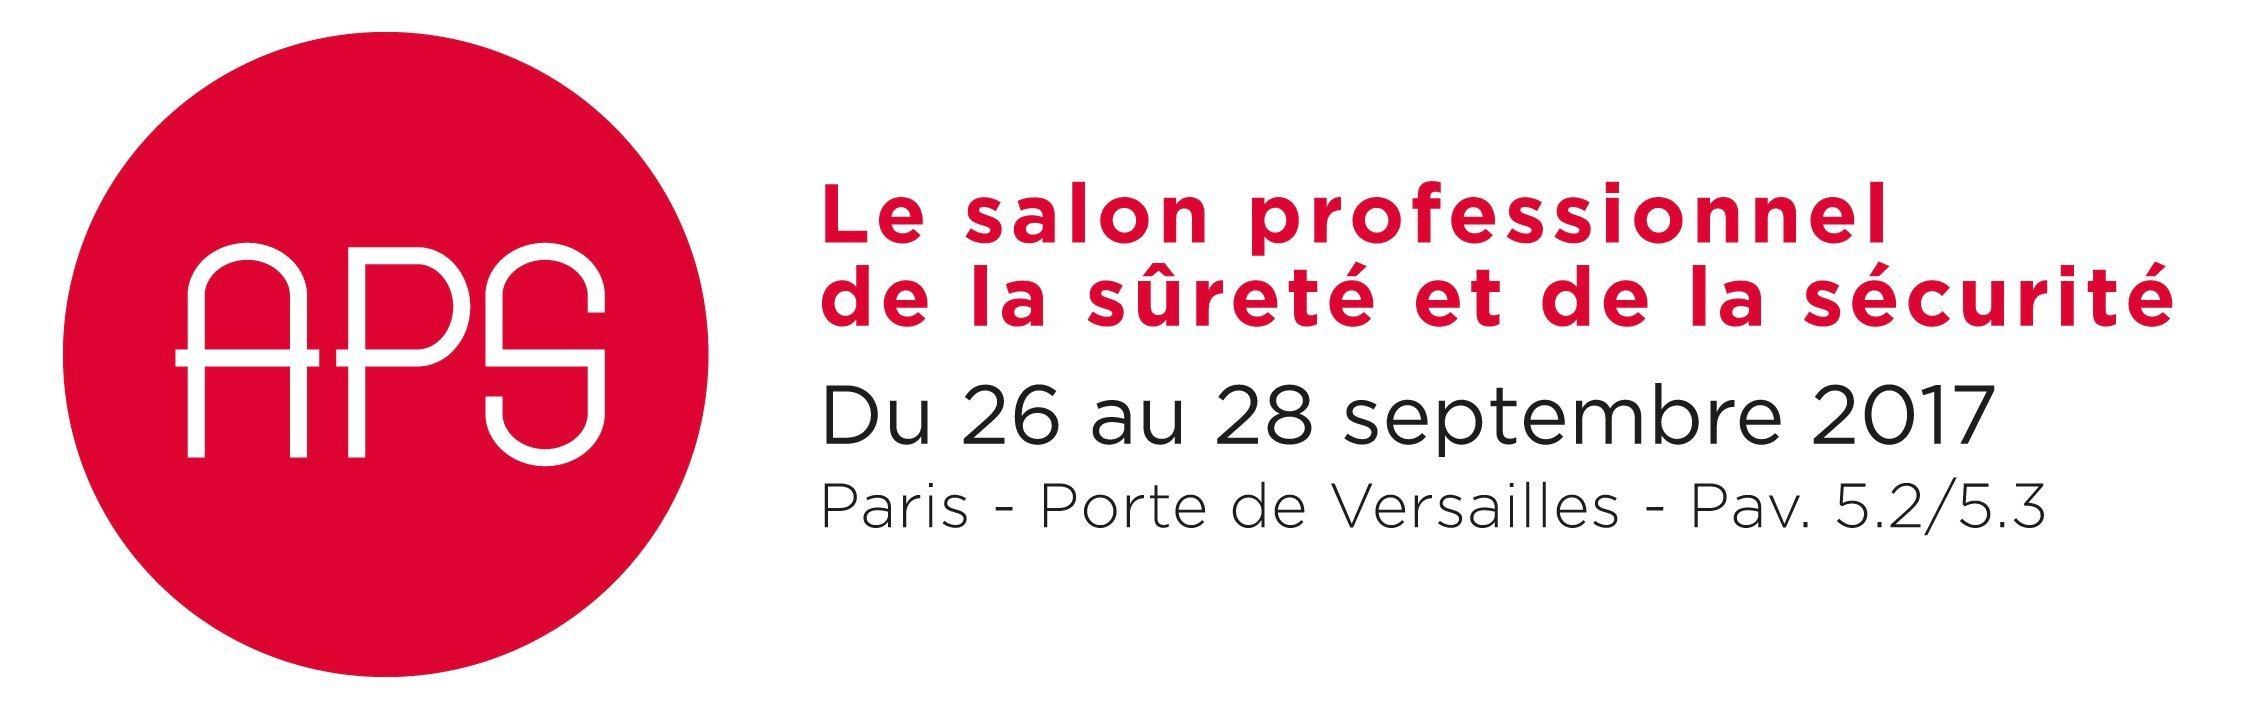 Aps le salon professionnel de la s ret et de la s curit - Salon de la securite ...